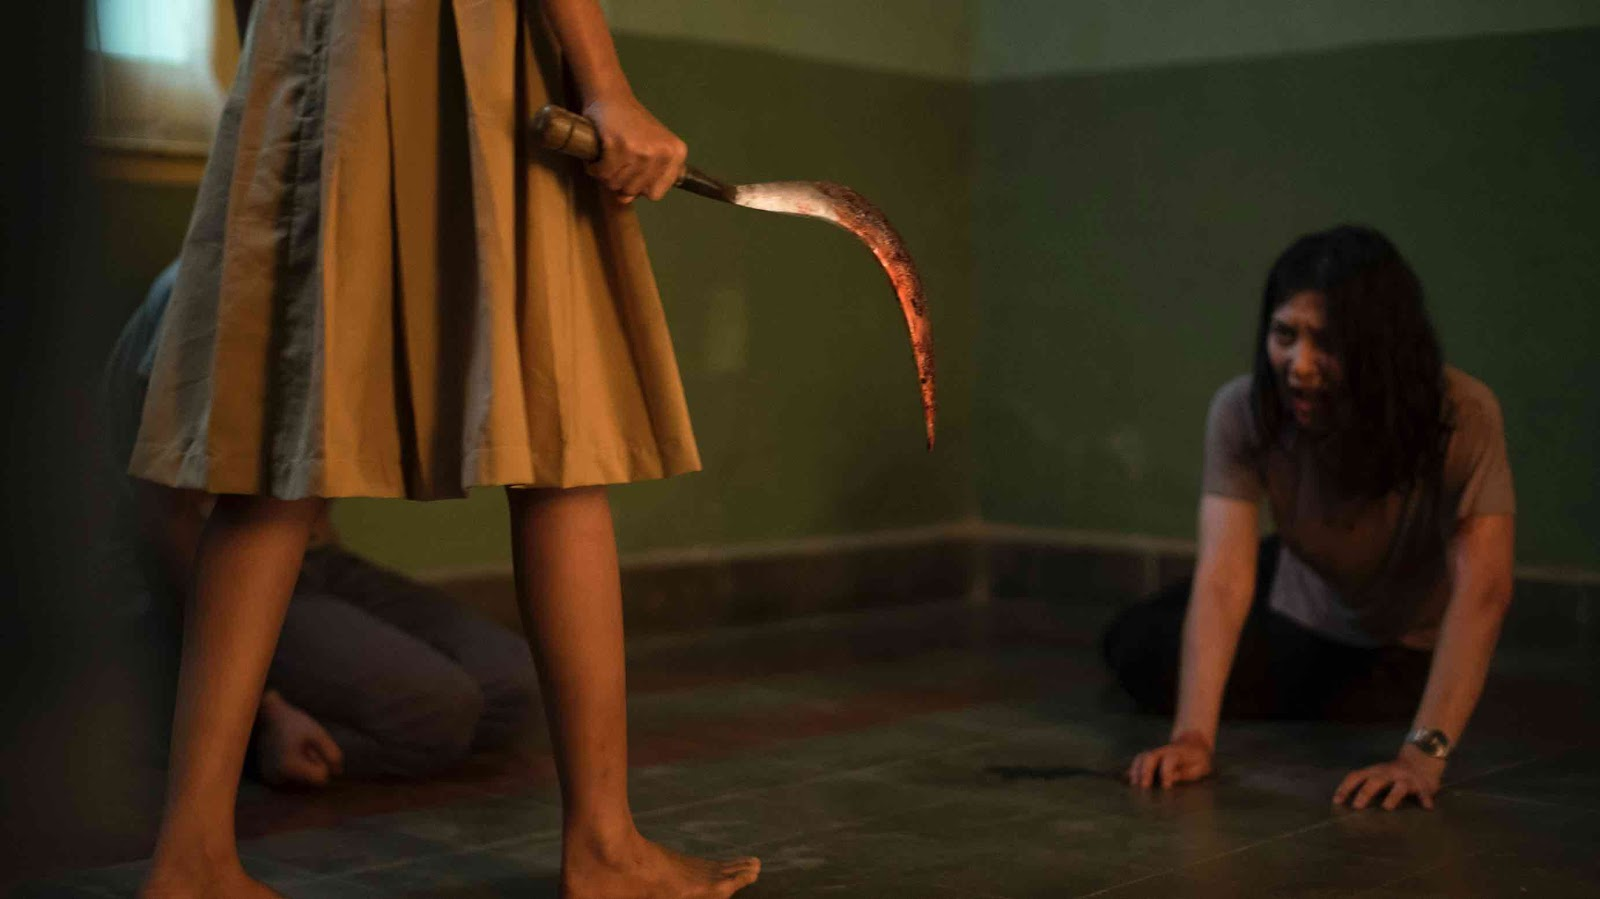 Queen Of Black Magic: Witchcraft horror from Headshot director Kimo Stamboel